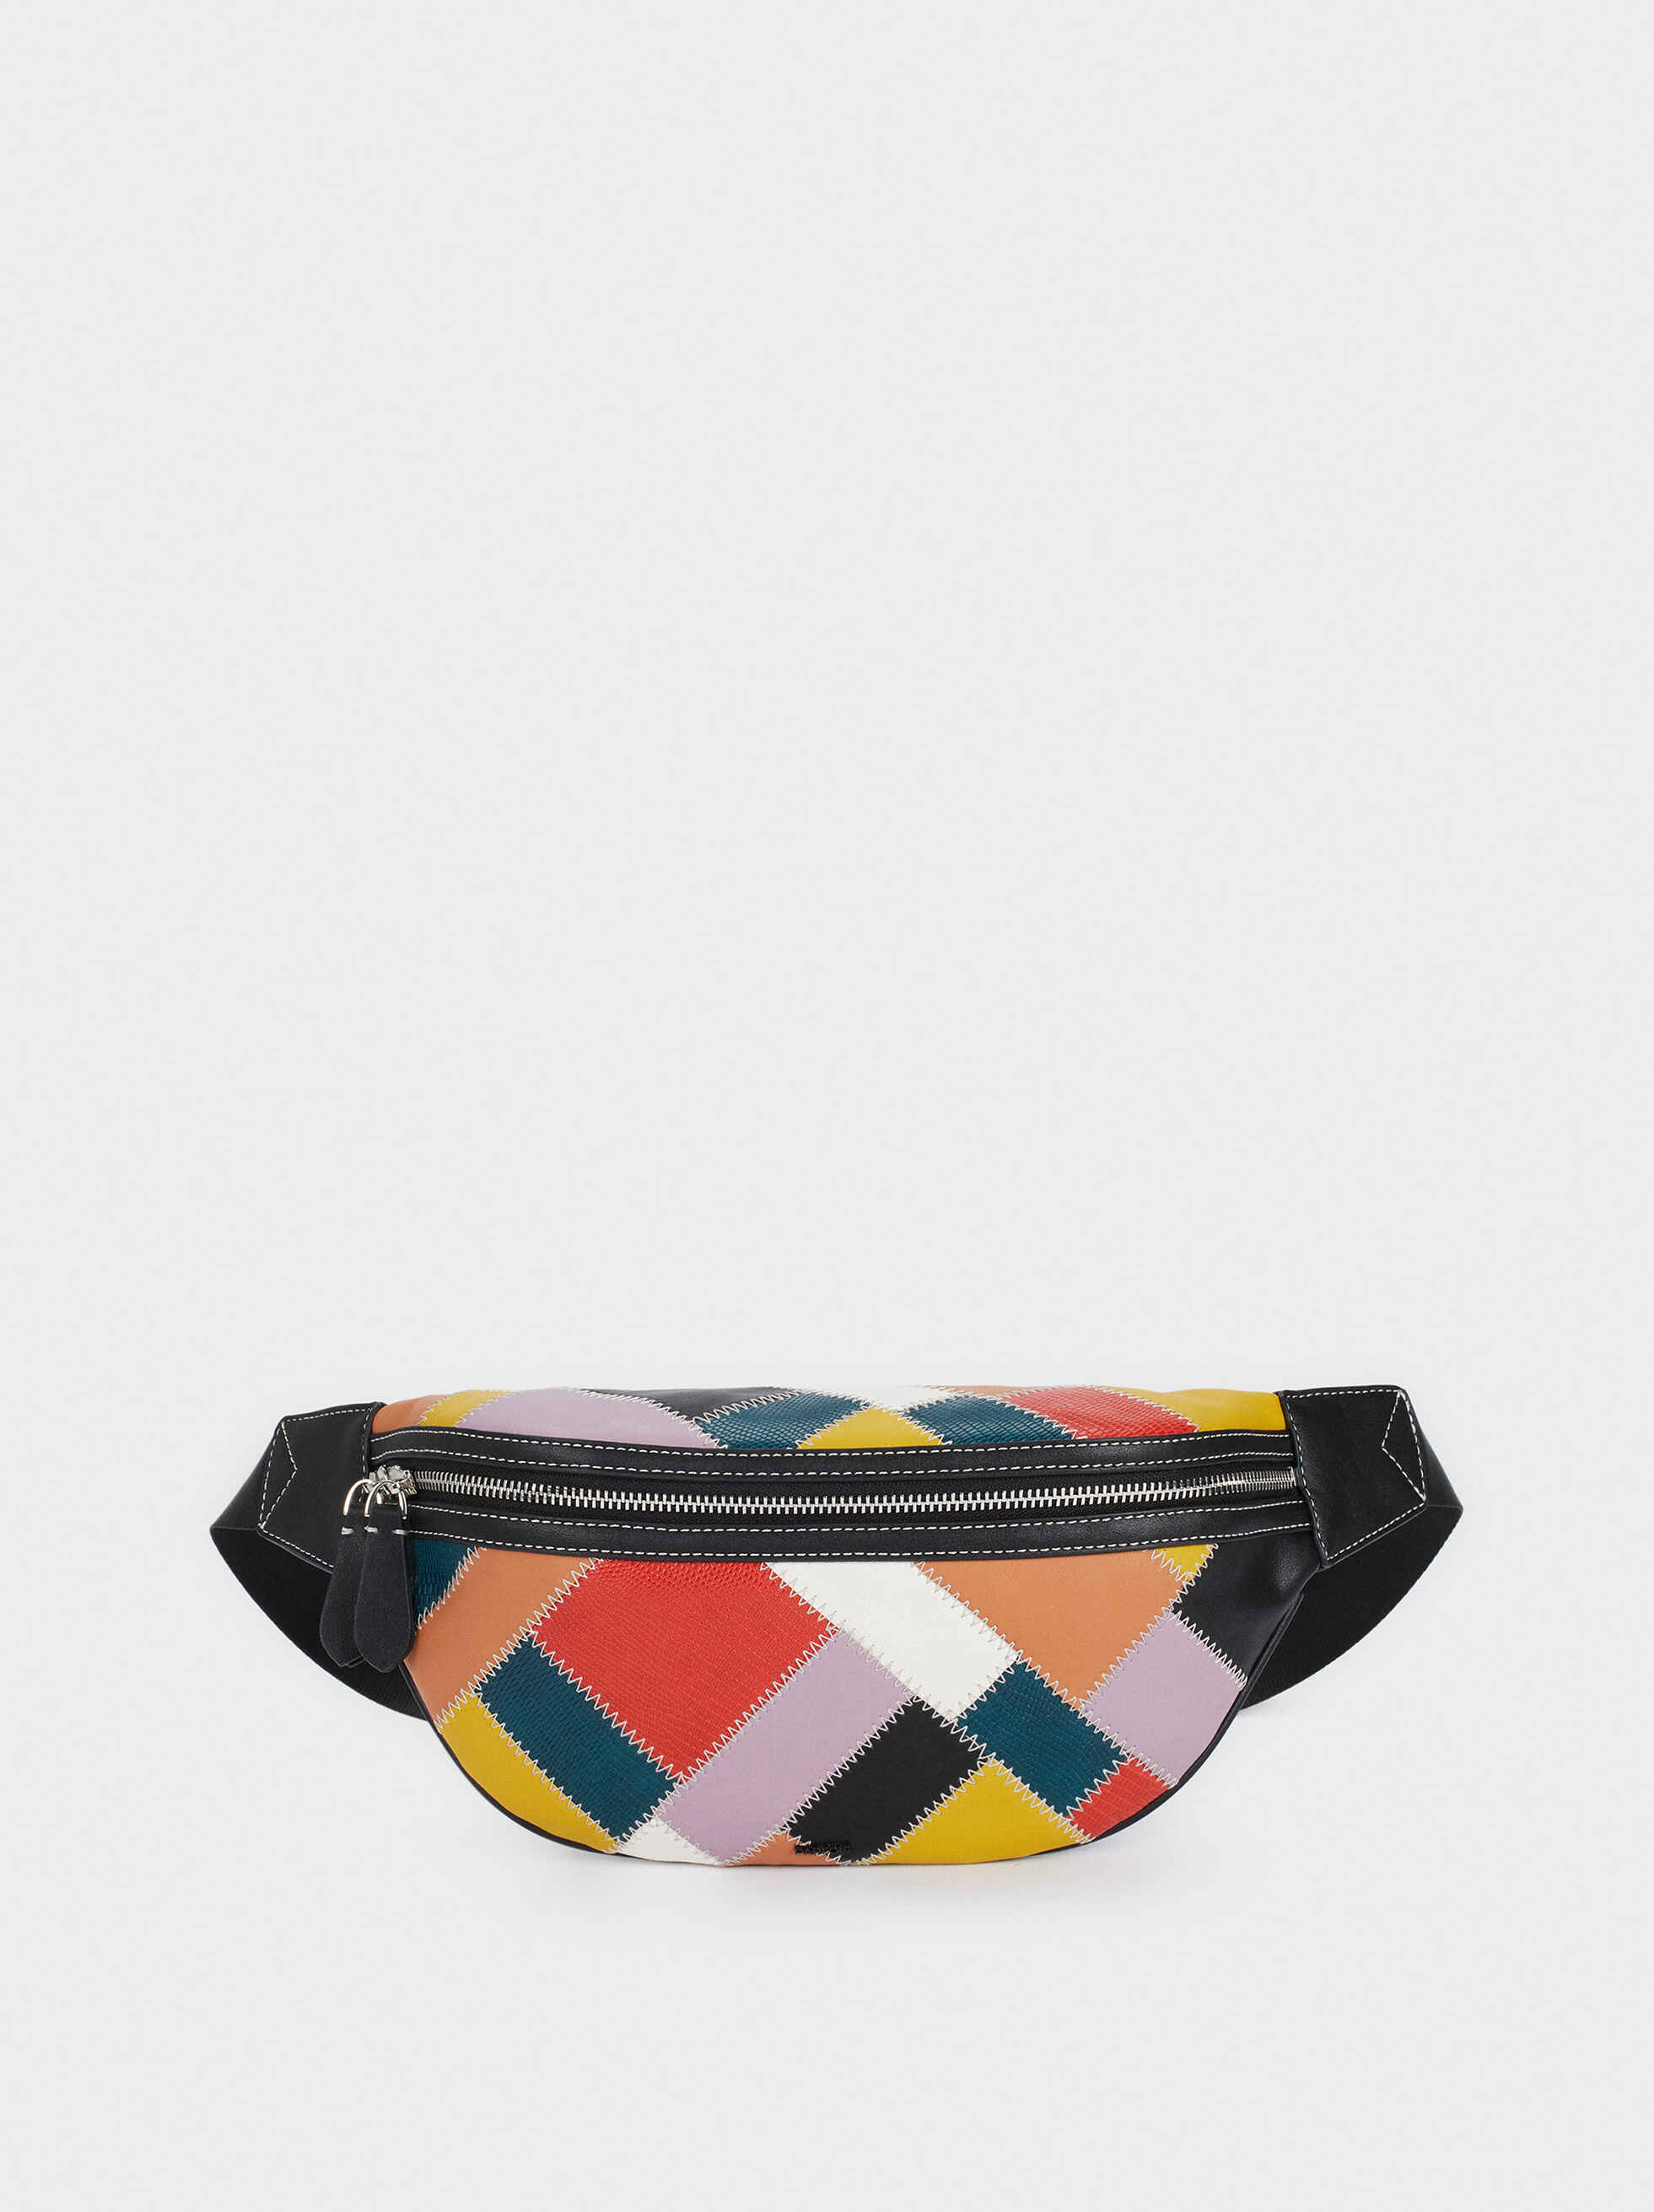 Belt Bag With Multicoloured Patchwork Design, Black, hi-res